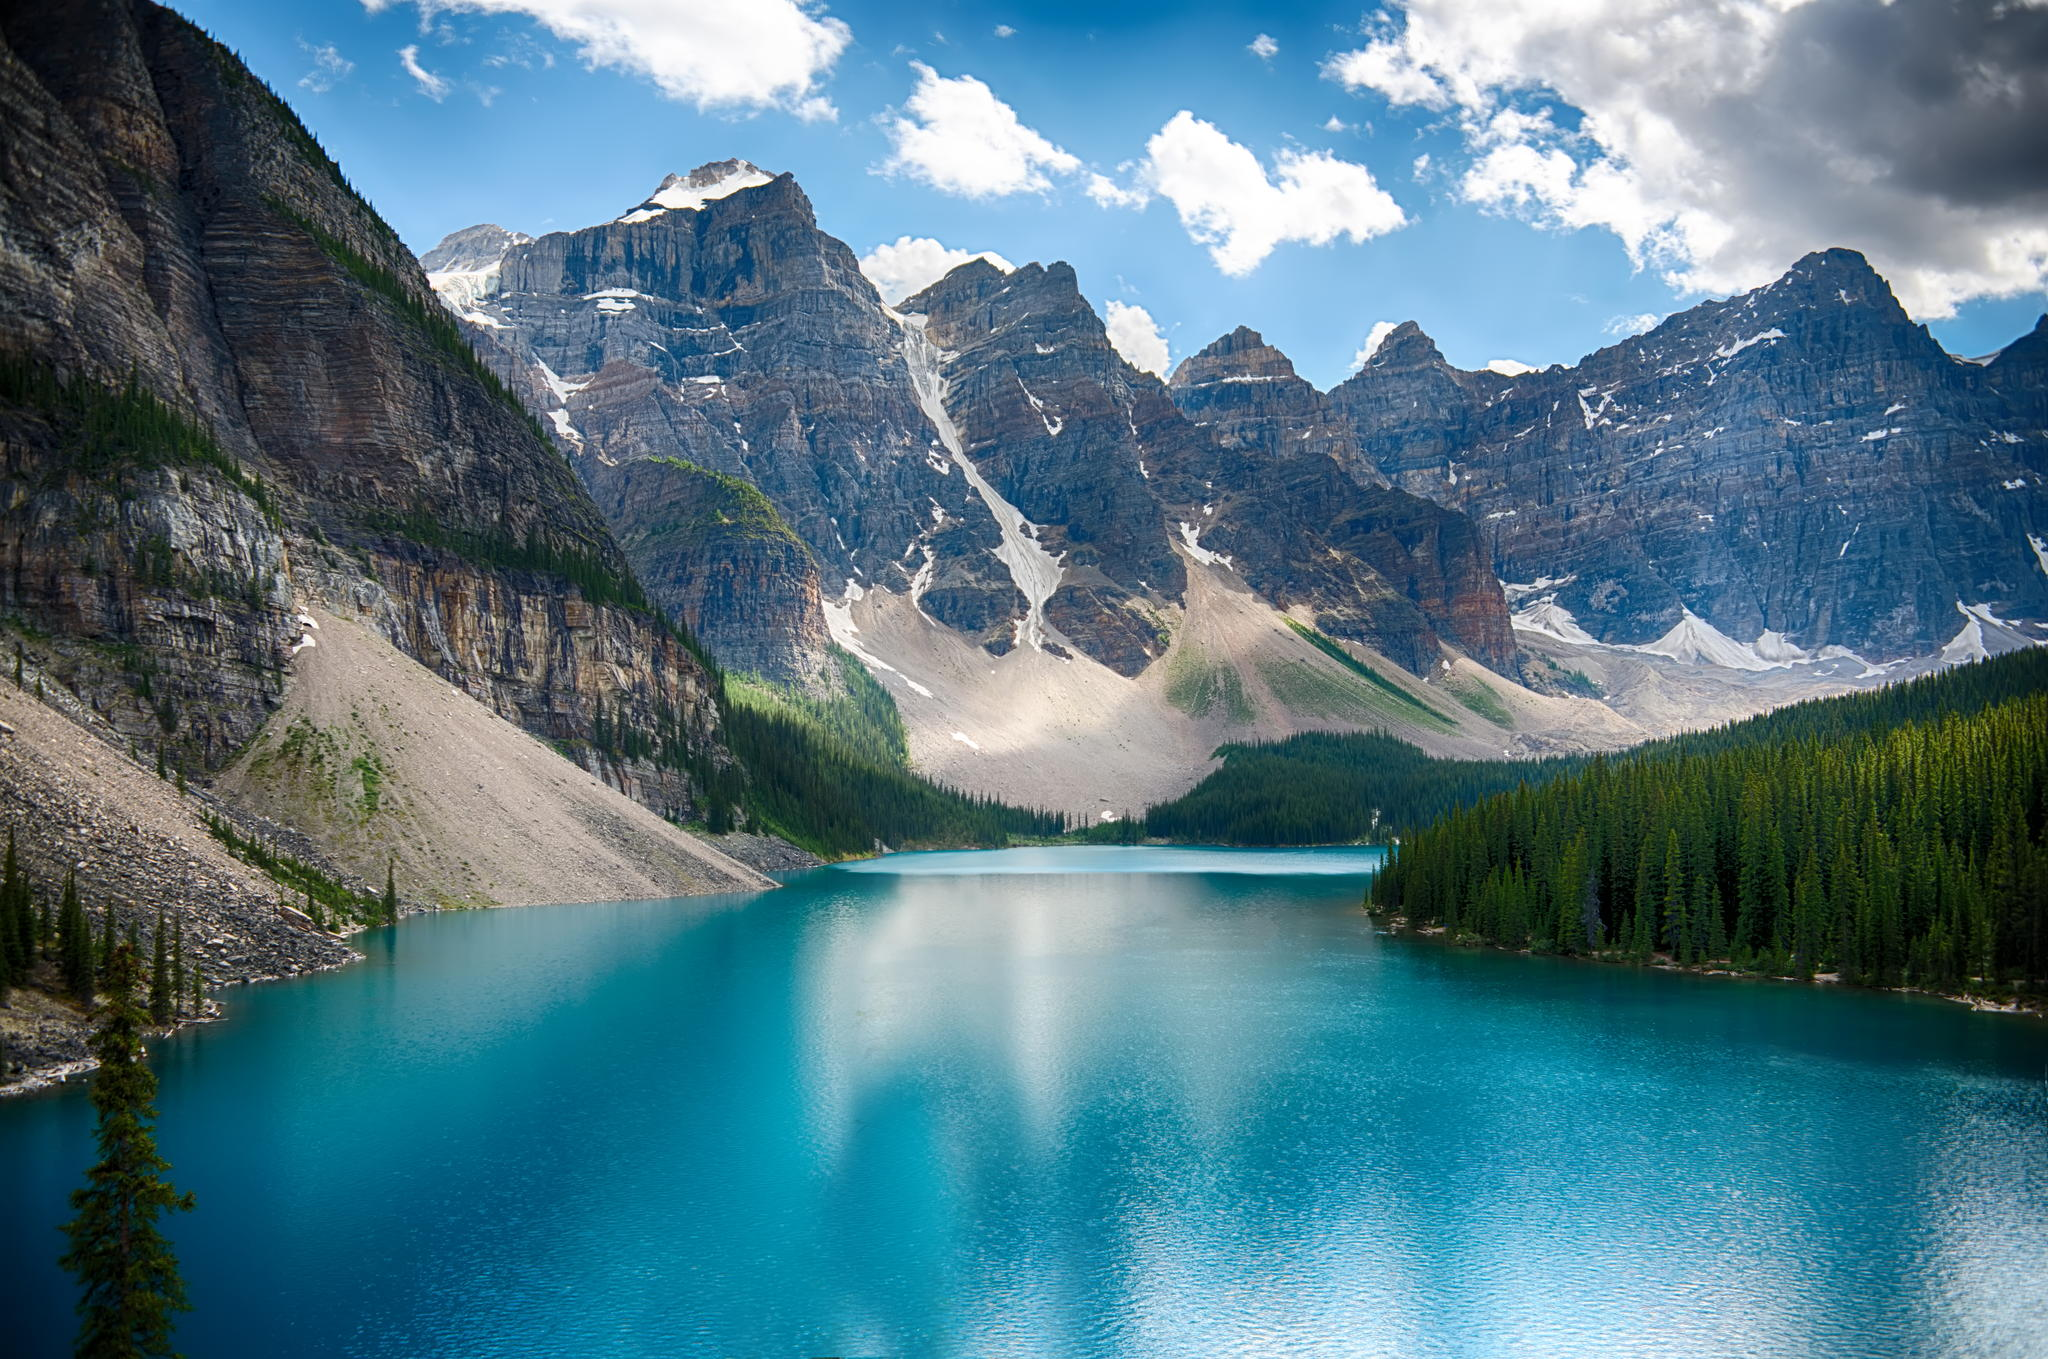 Moraine Lake in Banff National Park, 2012